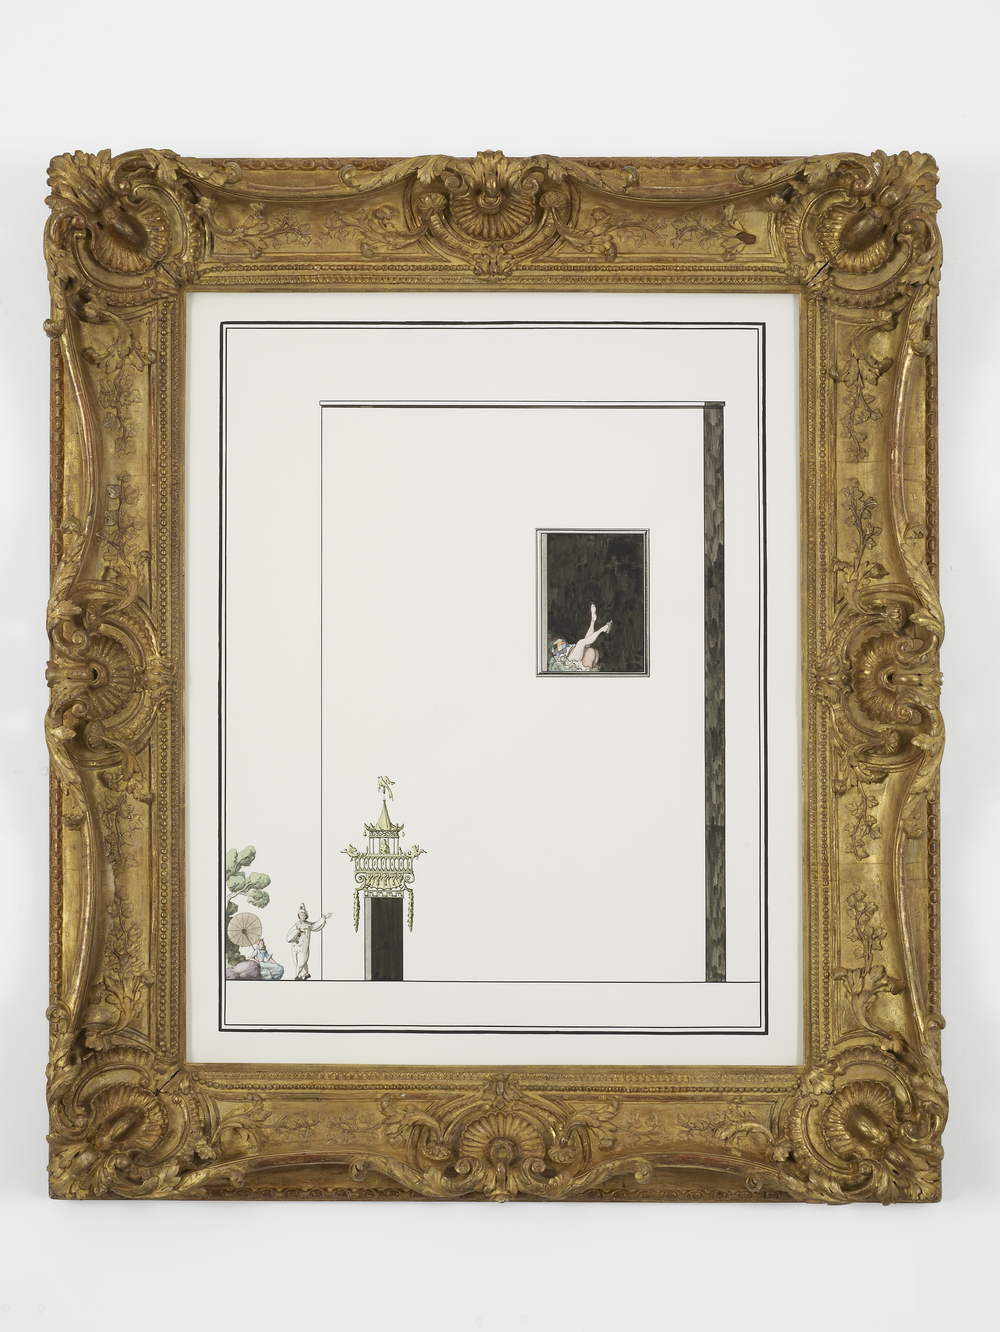 Scene from the Commedia: Pierrot bores Columbine with a detailed description of an elaborate doorframe. Meanwhile, Harlequin has sex with a servant upstairs 2014 Ink and watercolour on paper in artist's frame